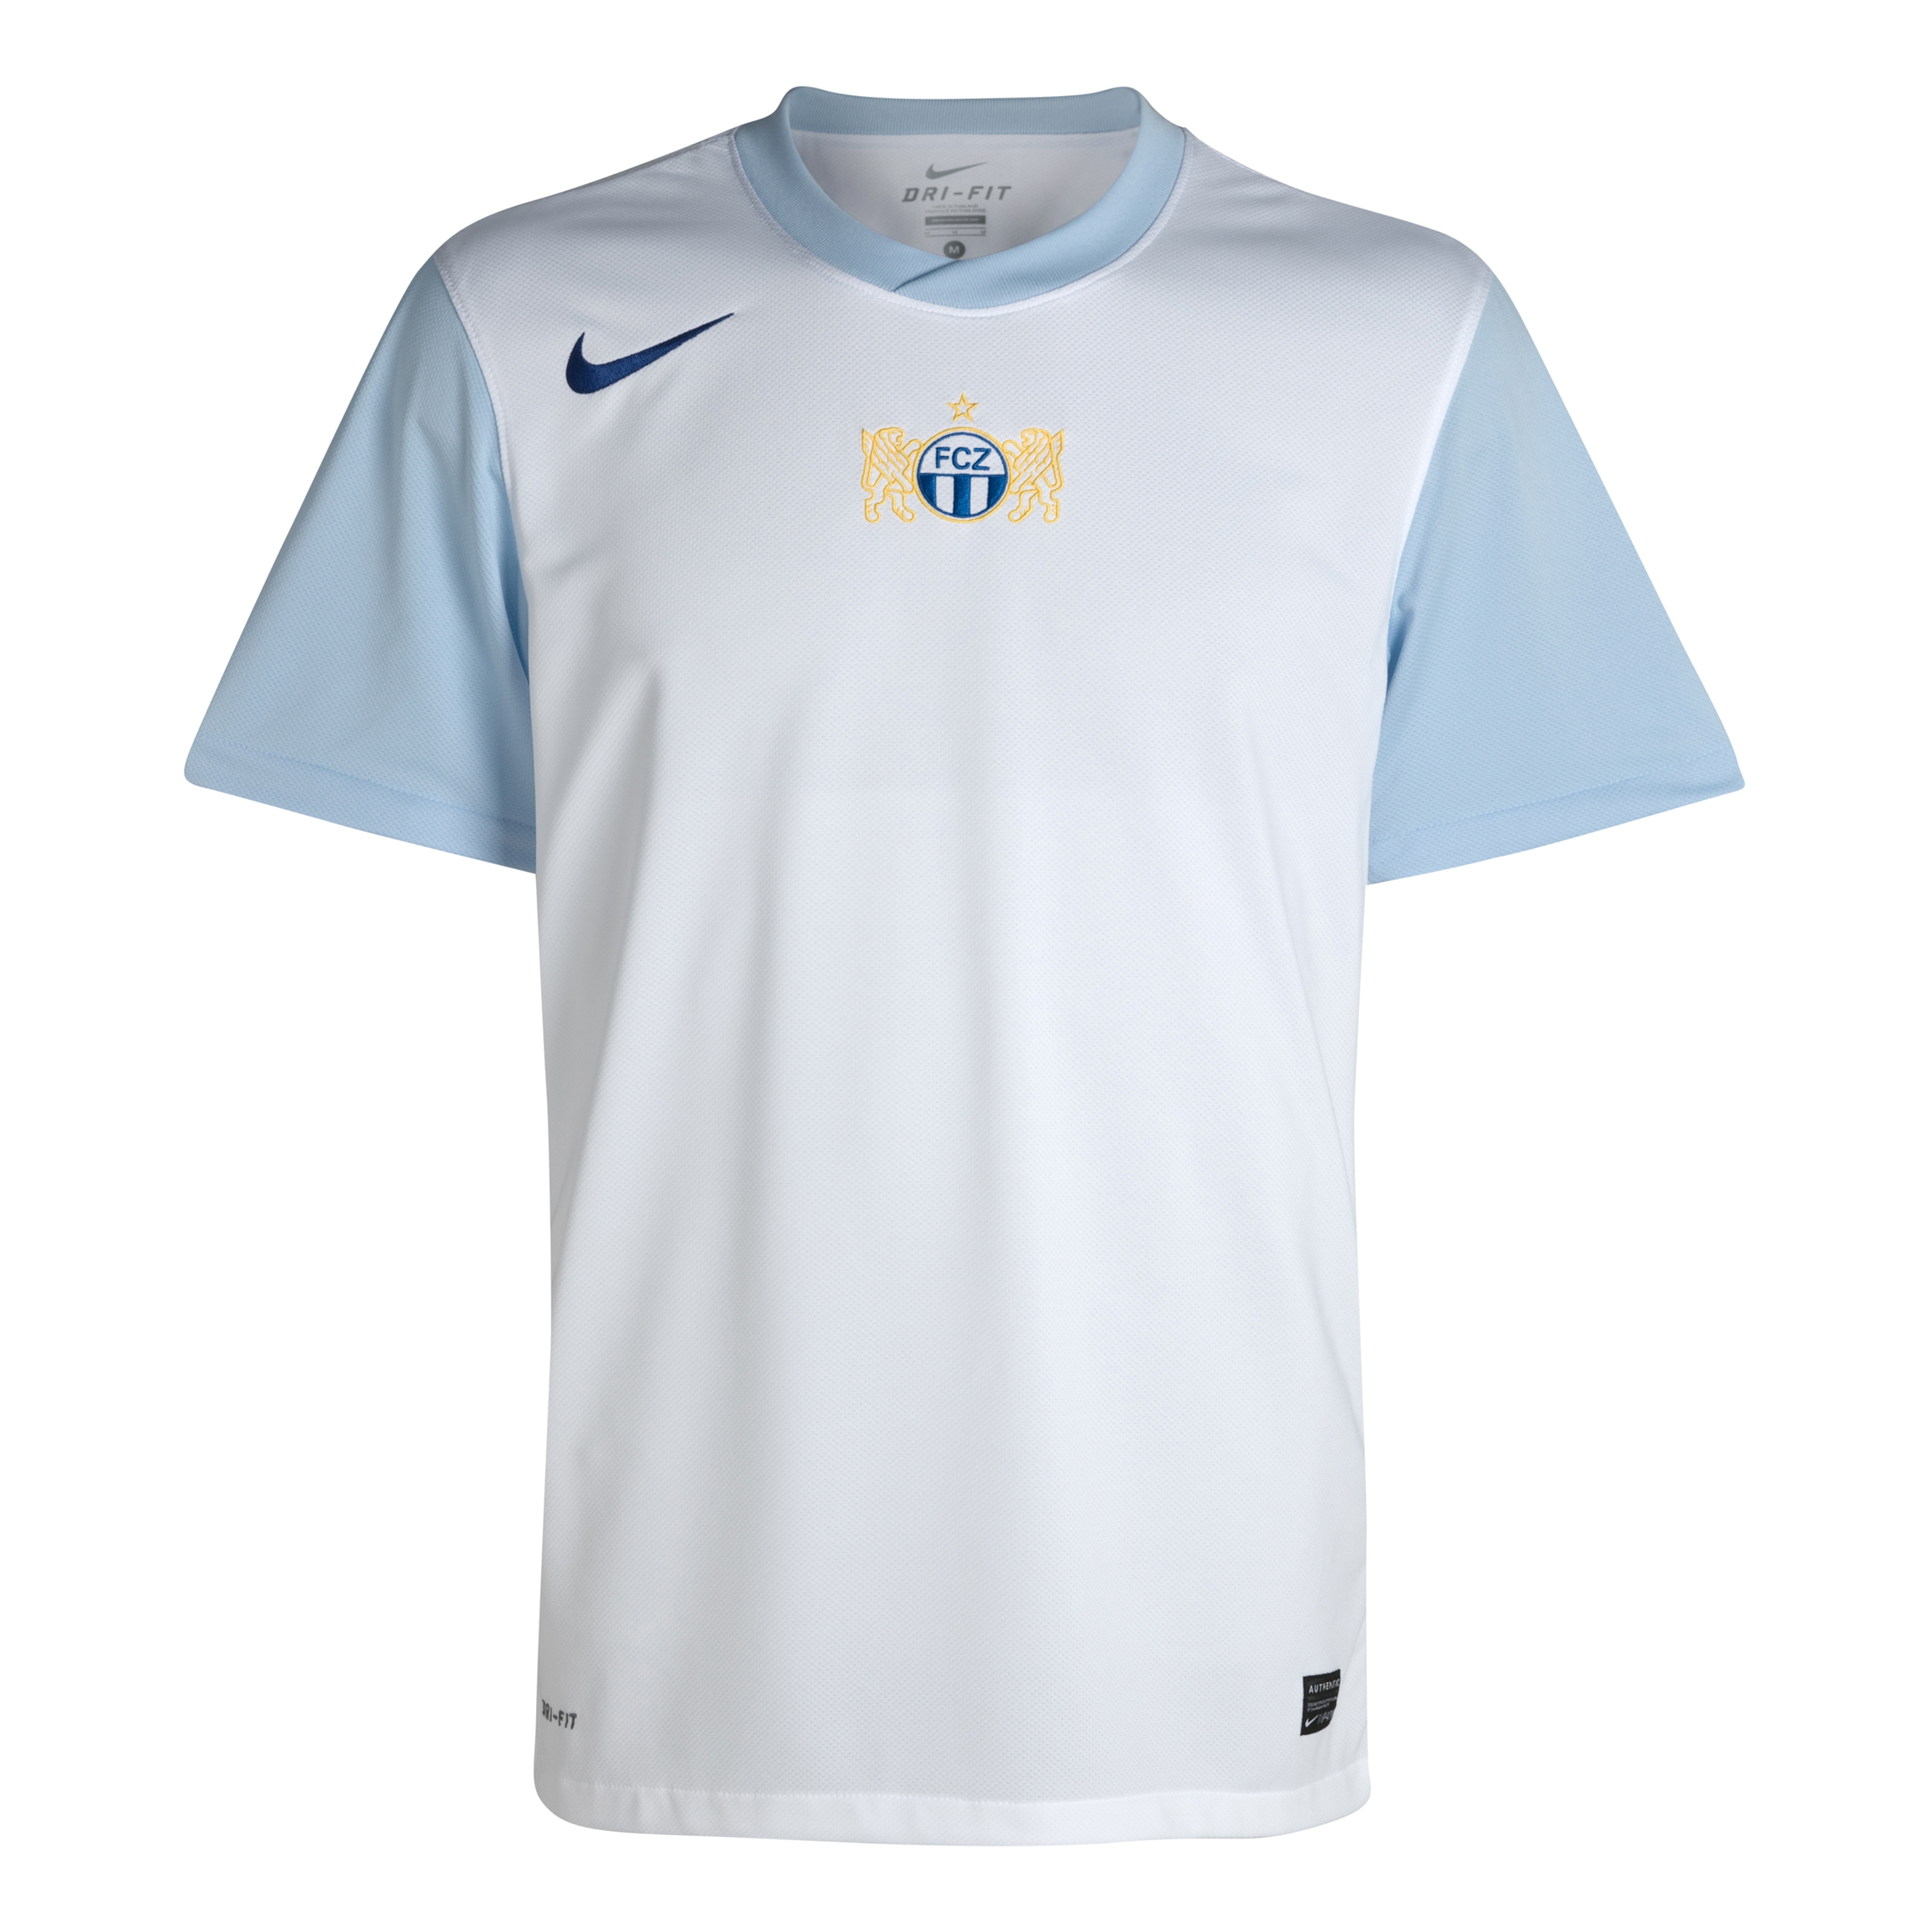 FC Zurich Home Shirt 2011/13